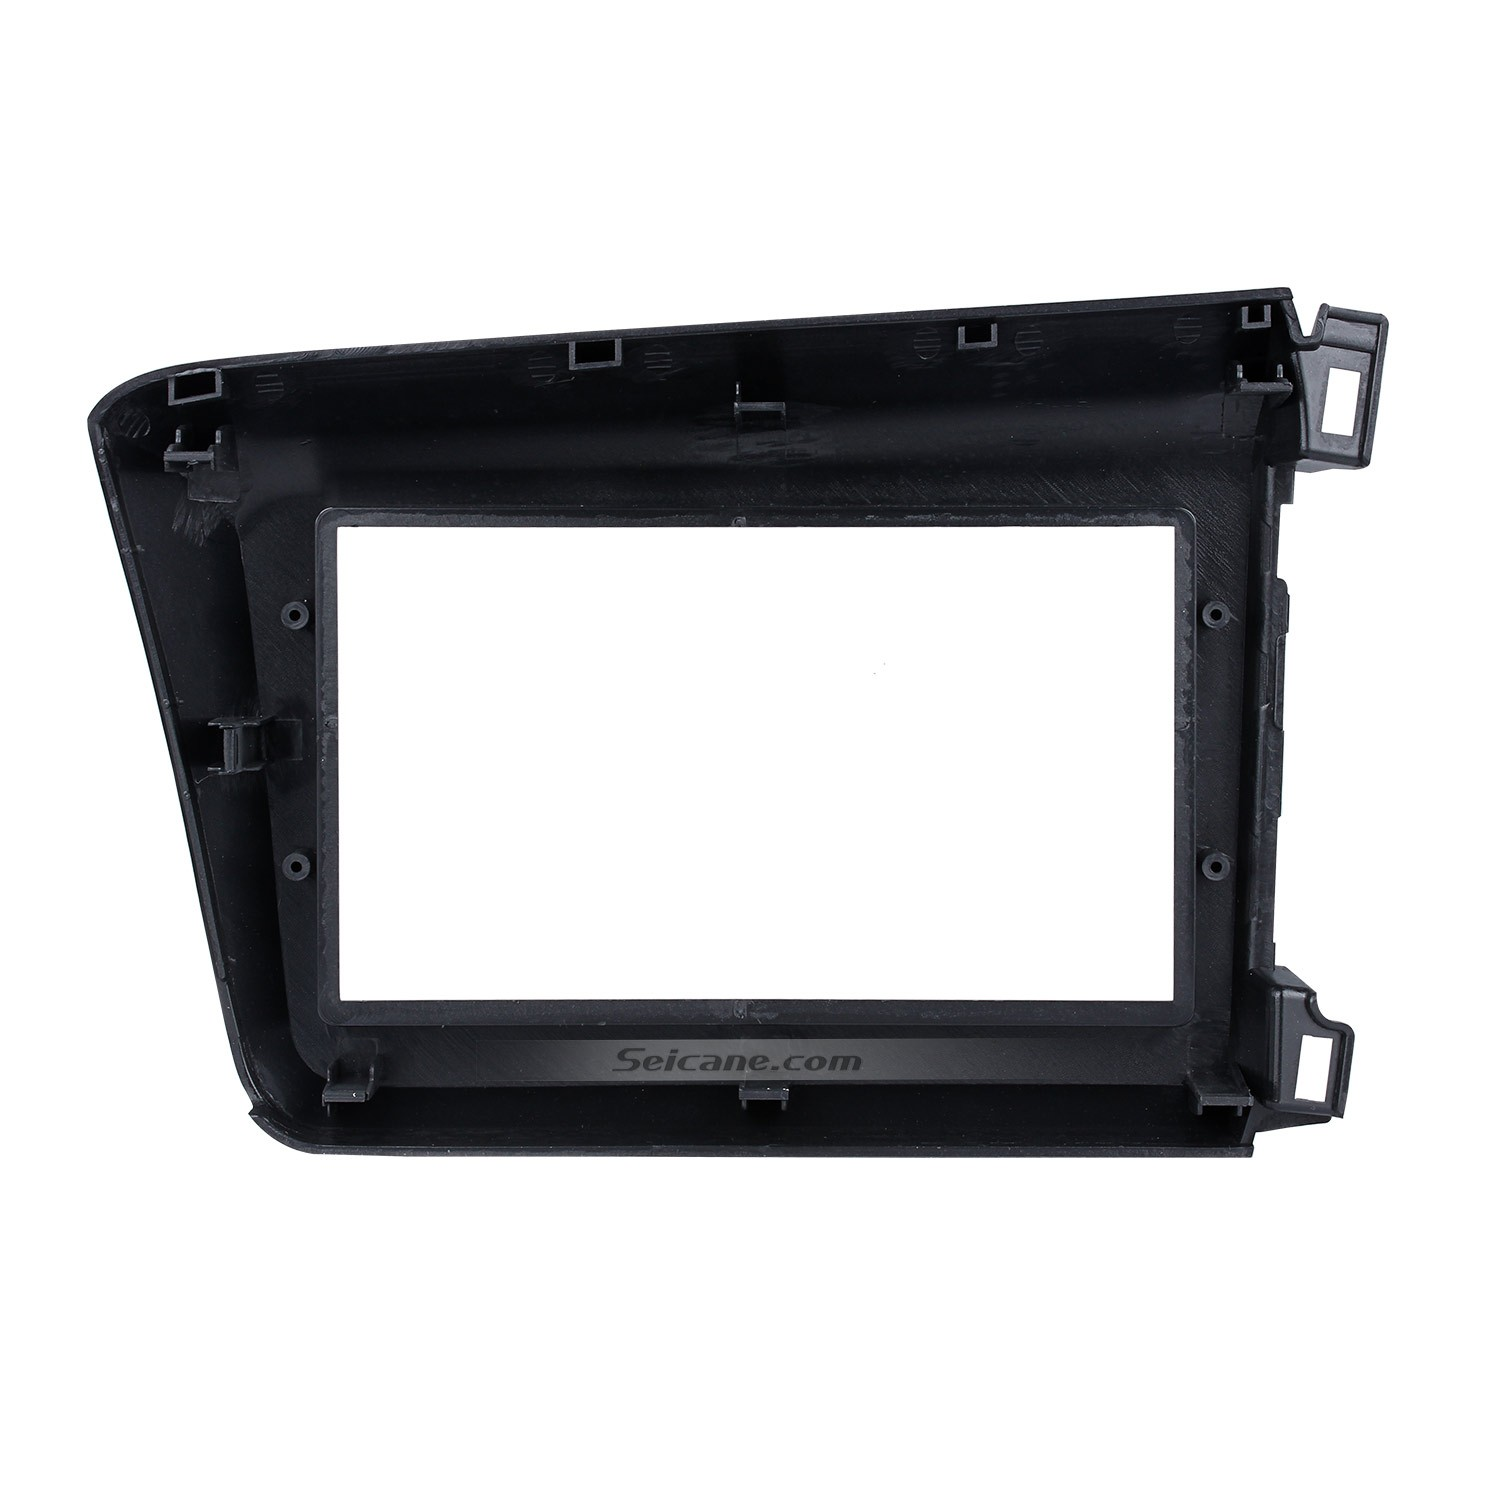 Graceful 2din 2012 Honda Civic Lhd Car Radio Fascia Audio Frame Dash Kit Auto Stereo Installation